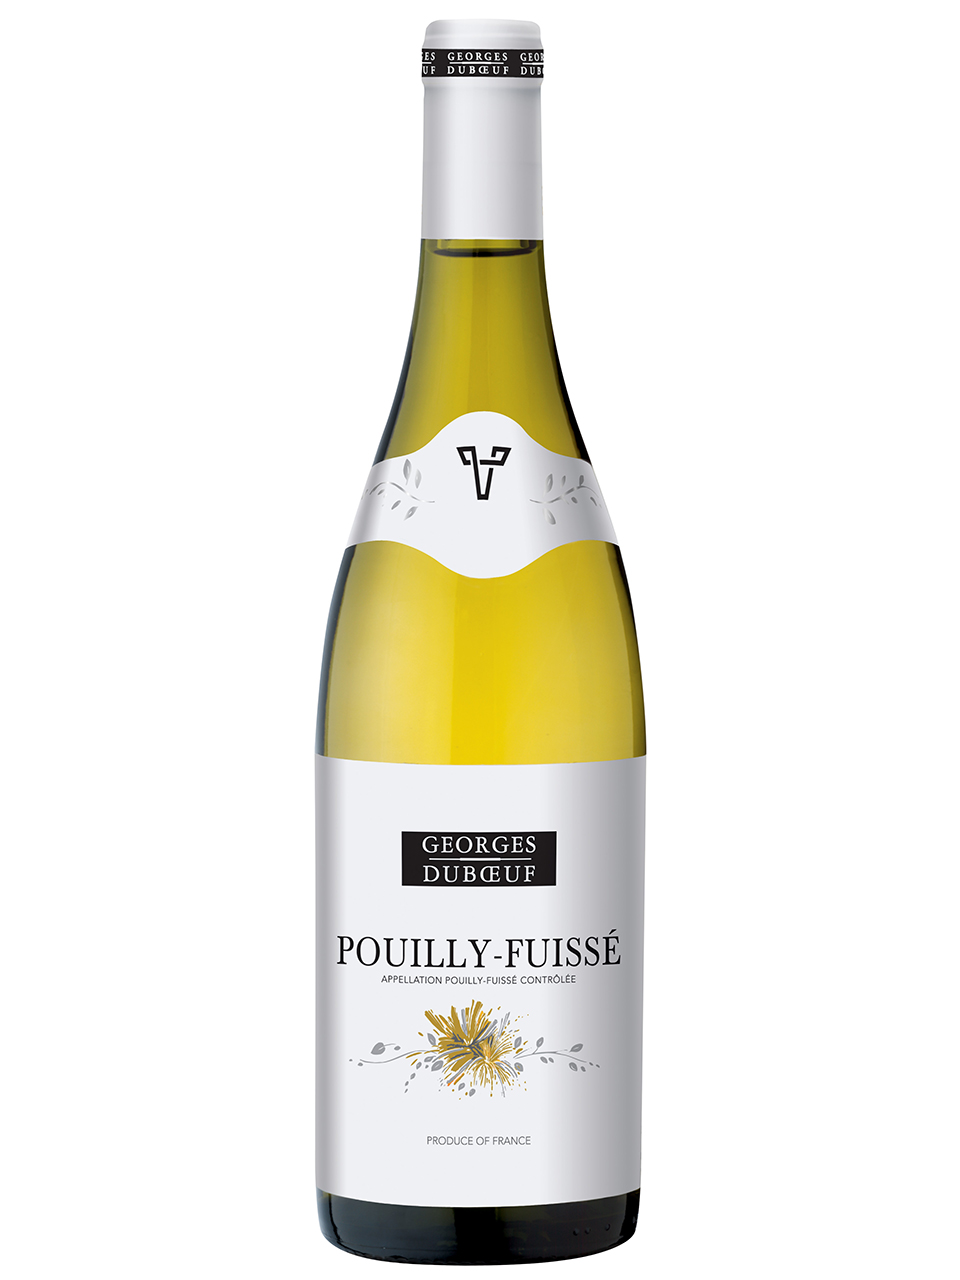 Duboeuf Pouilly Fuisse